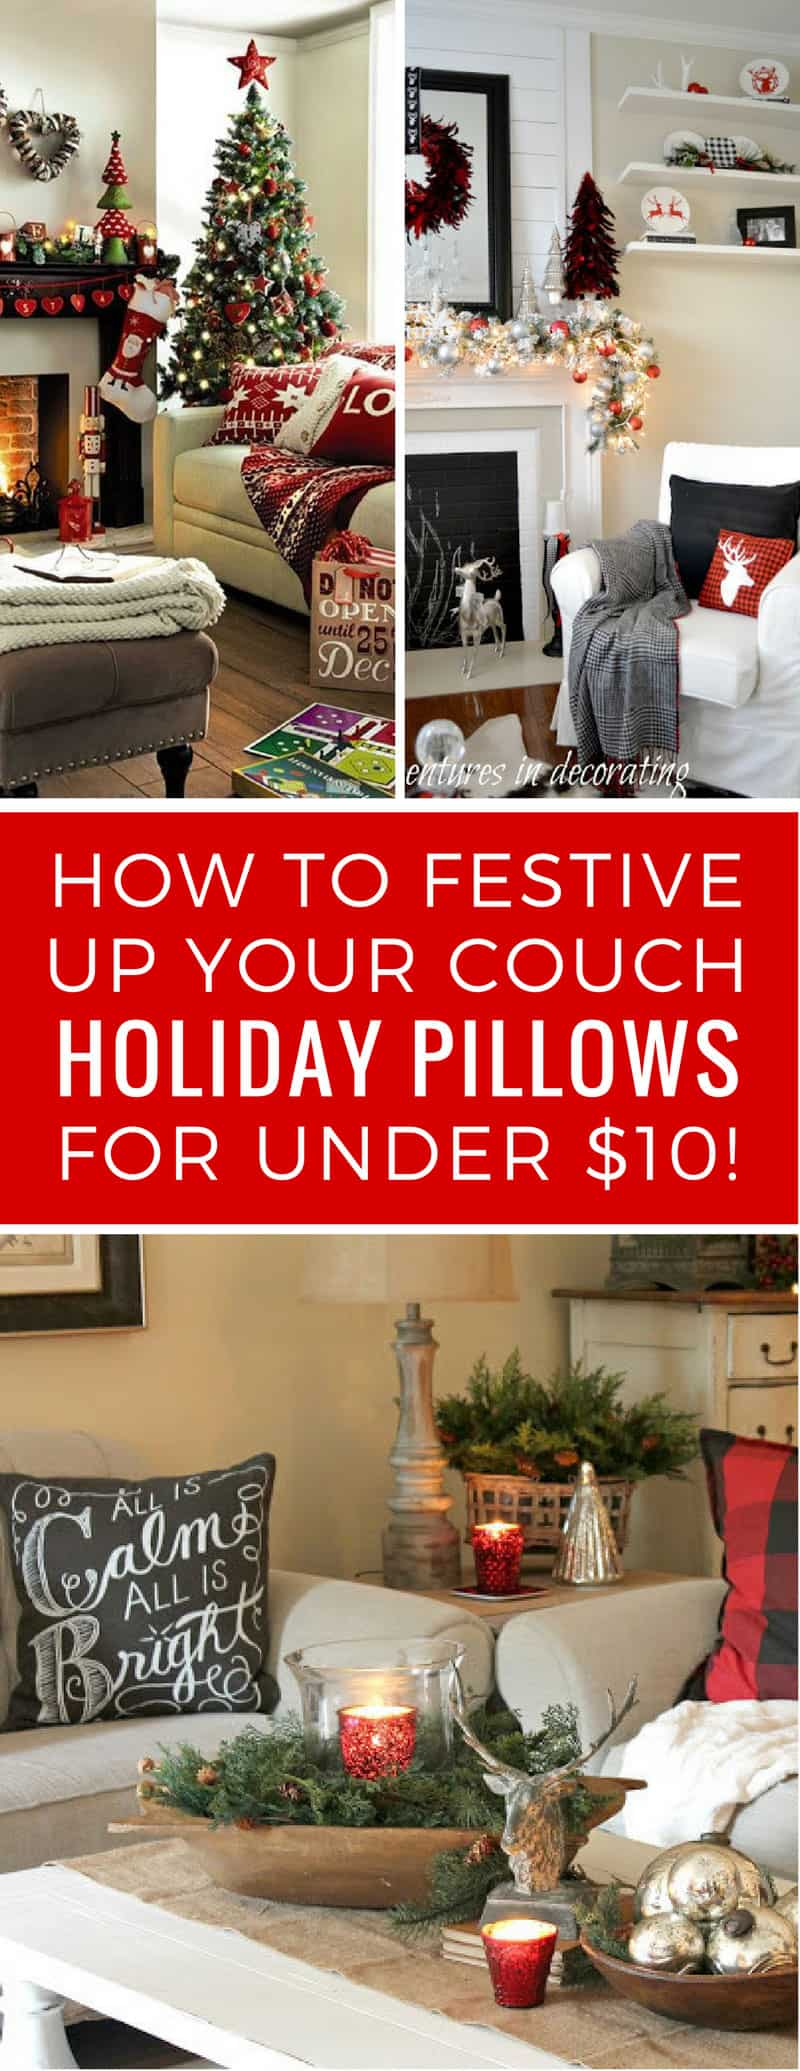 Loving these Holiday throw pillow covers - festive and homely!